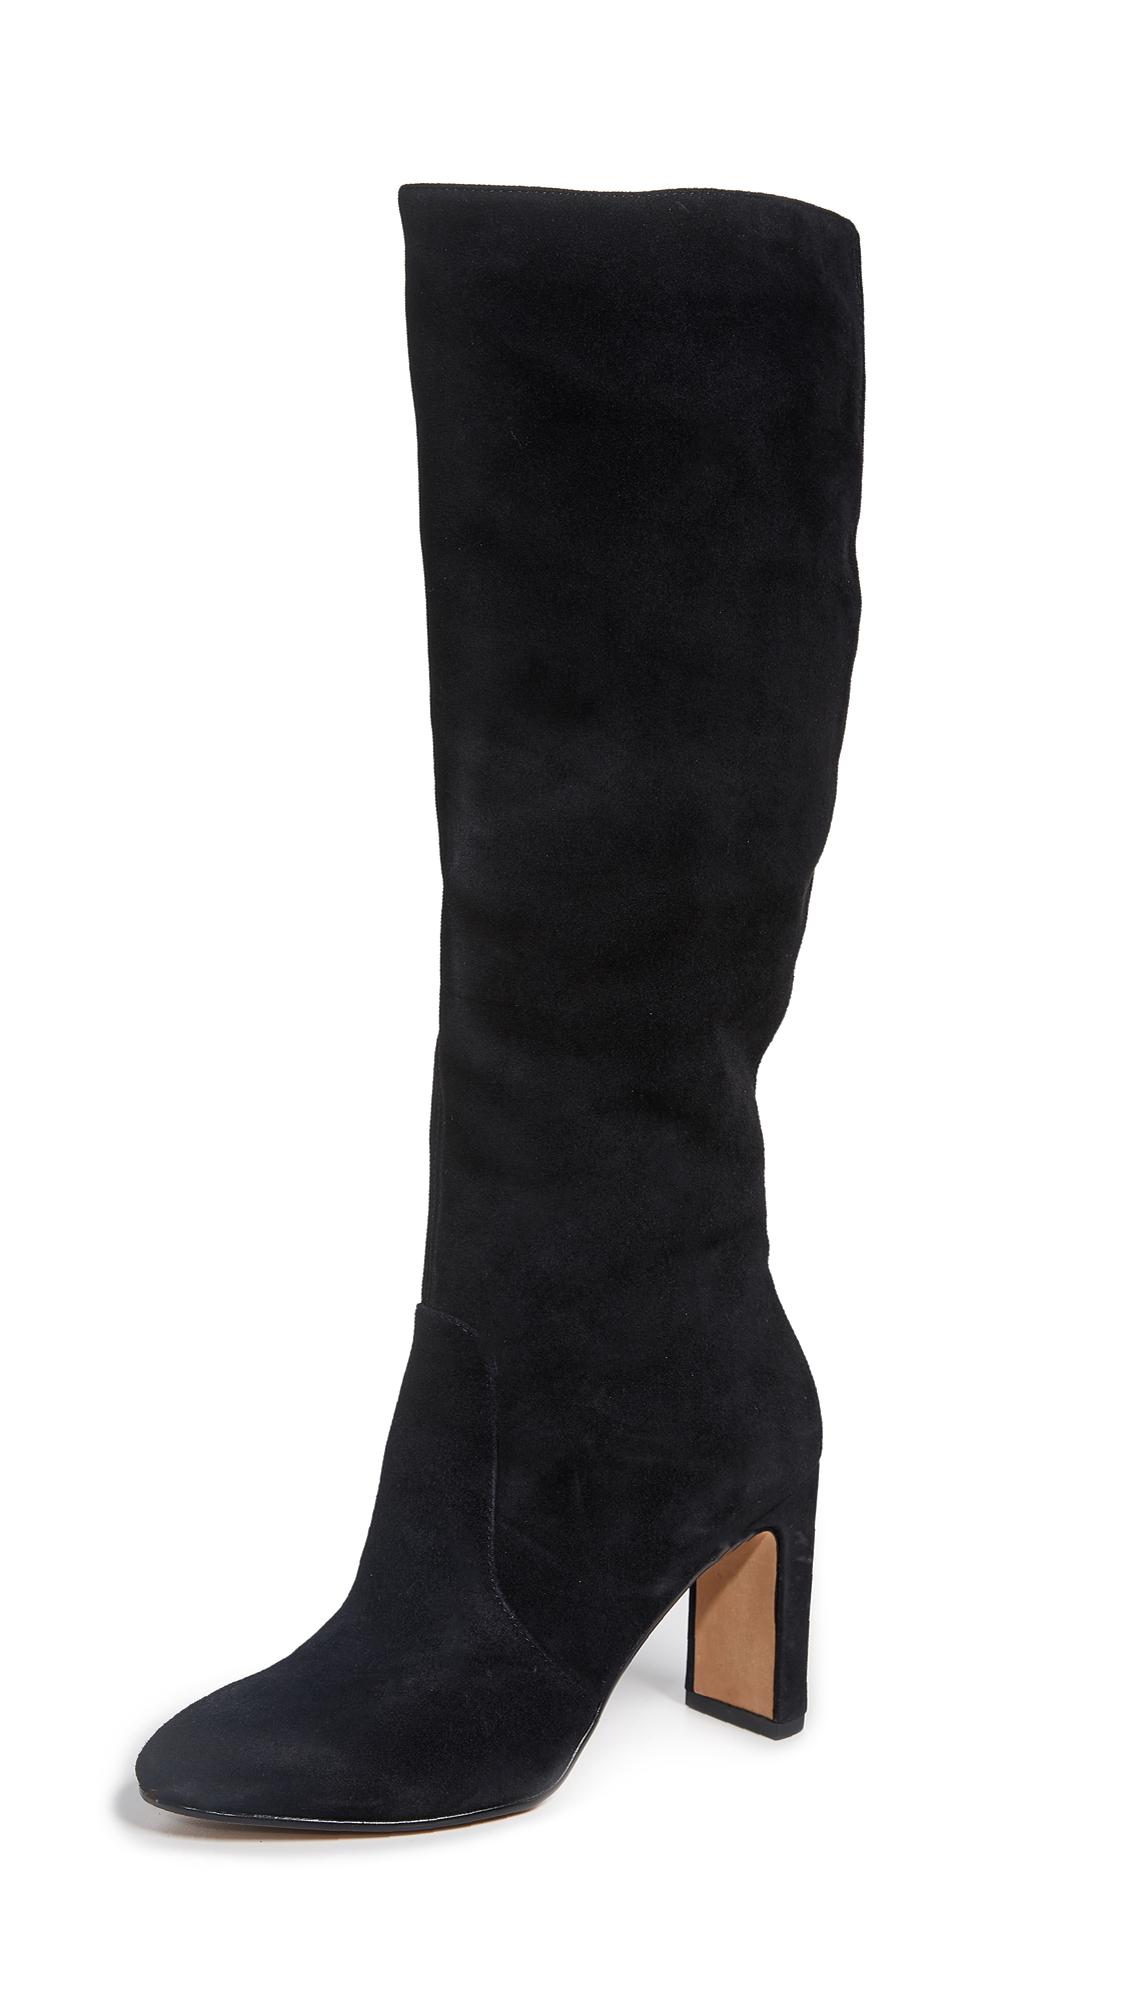 Dolce Vita Coop Tall Boots In Black